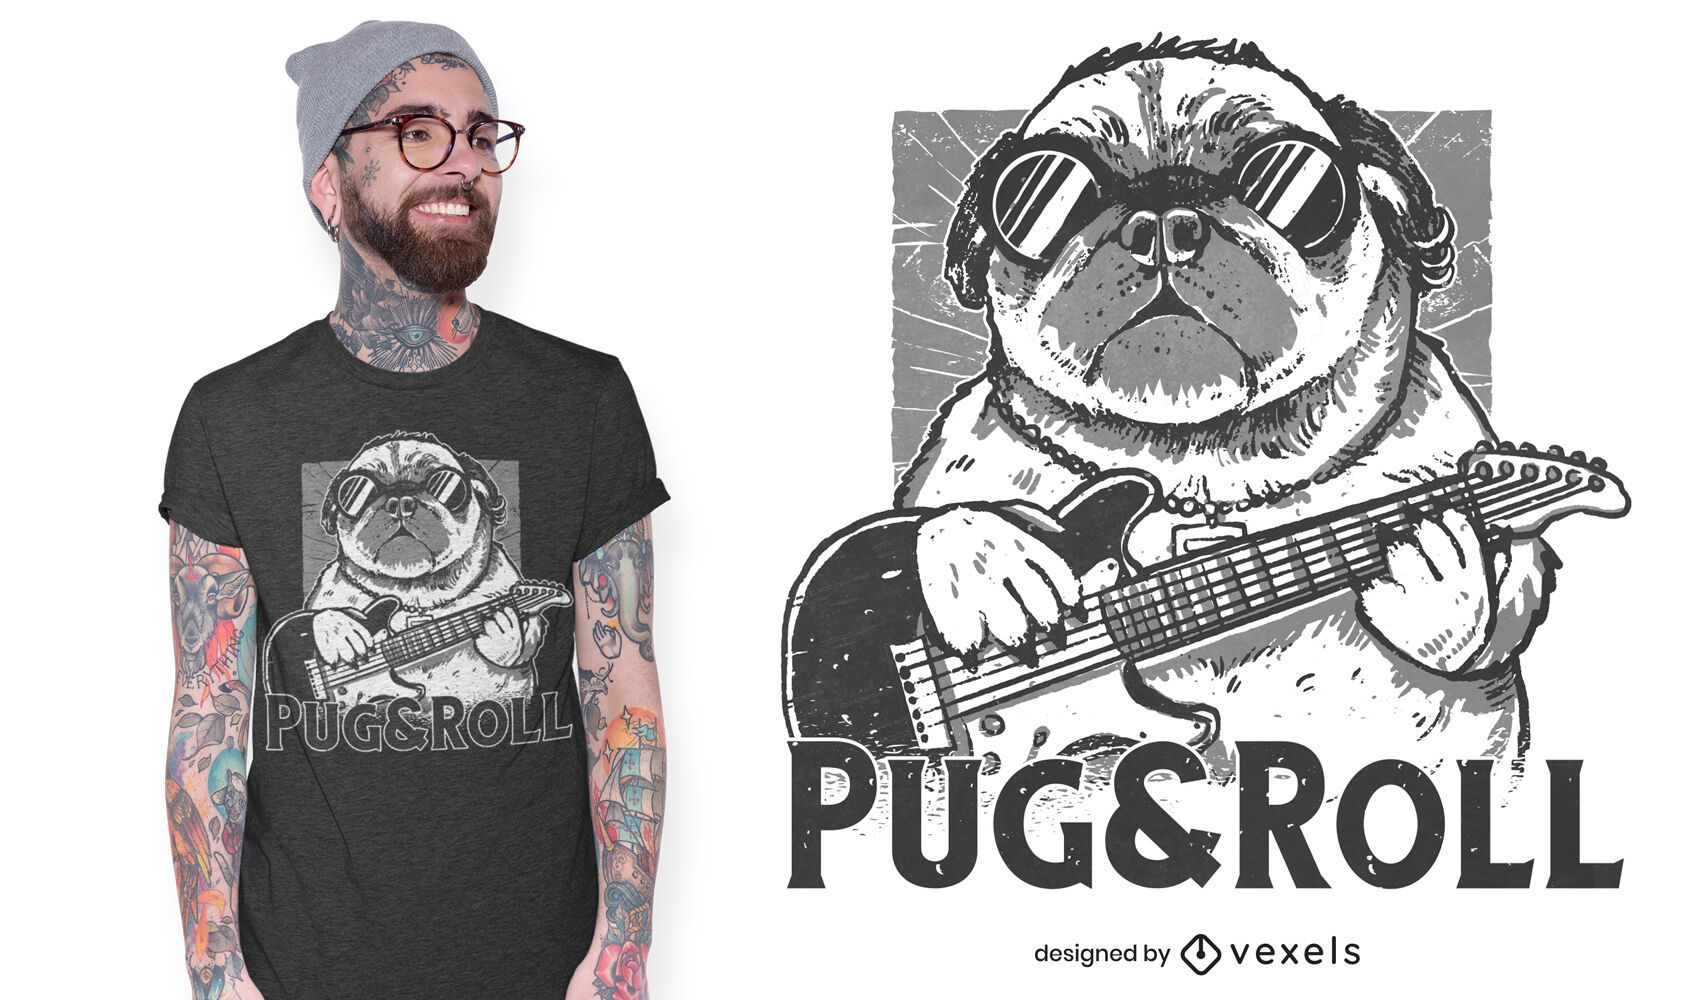 Pug and roll t-shirt design